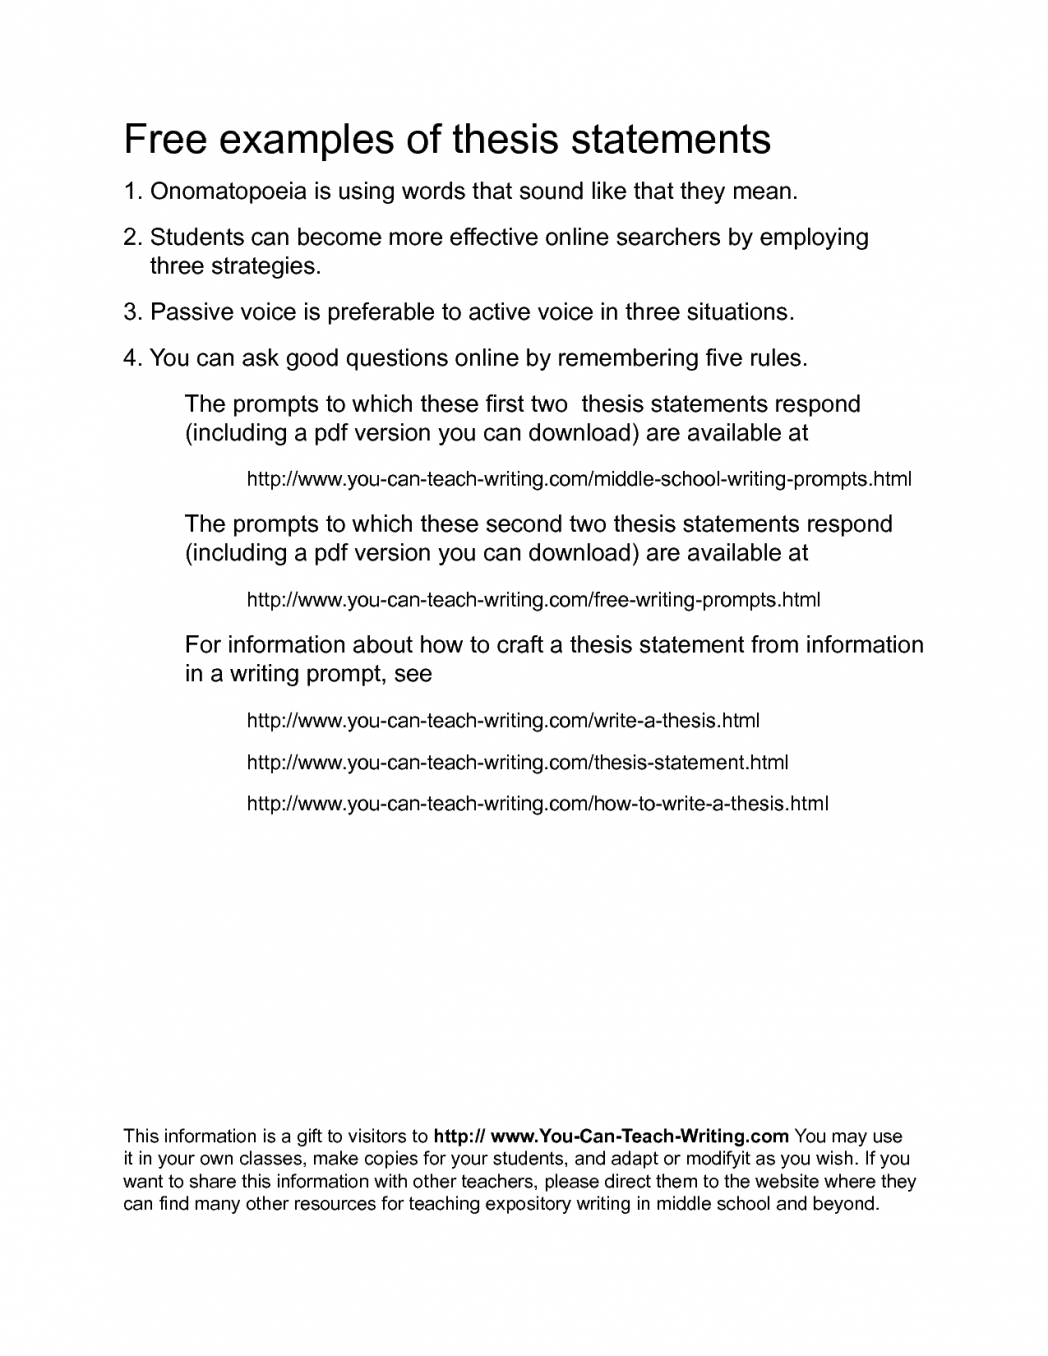 Essay Topics For High School English  High School Personal Statement Sample Essays also High School Scholarship Essay Examples  Essay Topics Hamlet For Thesis How To Write From Writing  Thesis Statement Examples For Narrative Essays